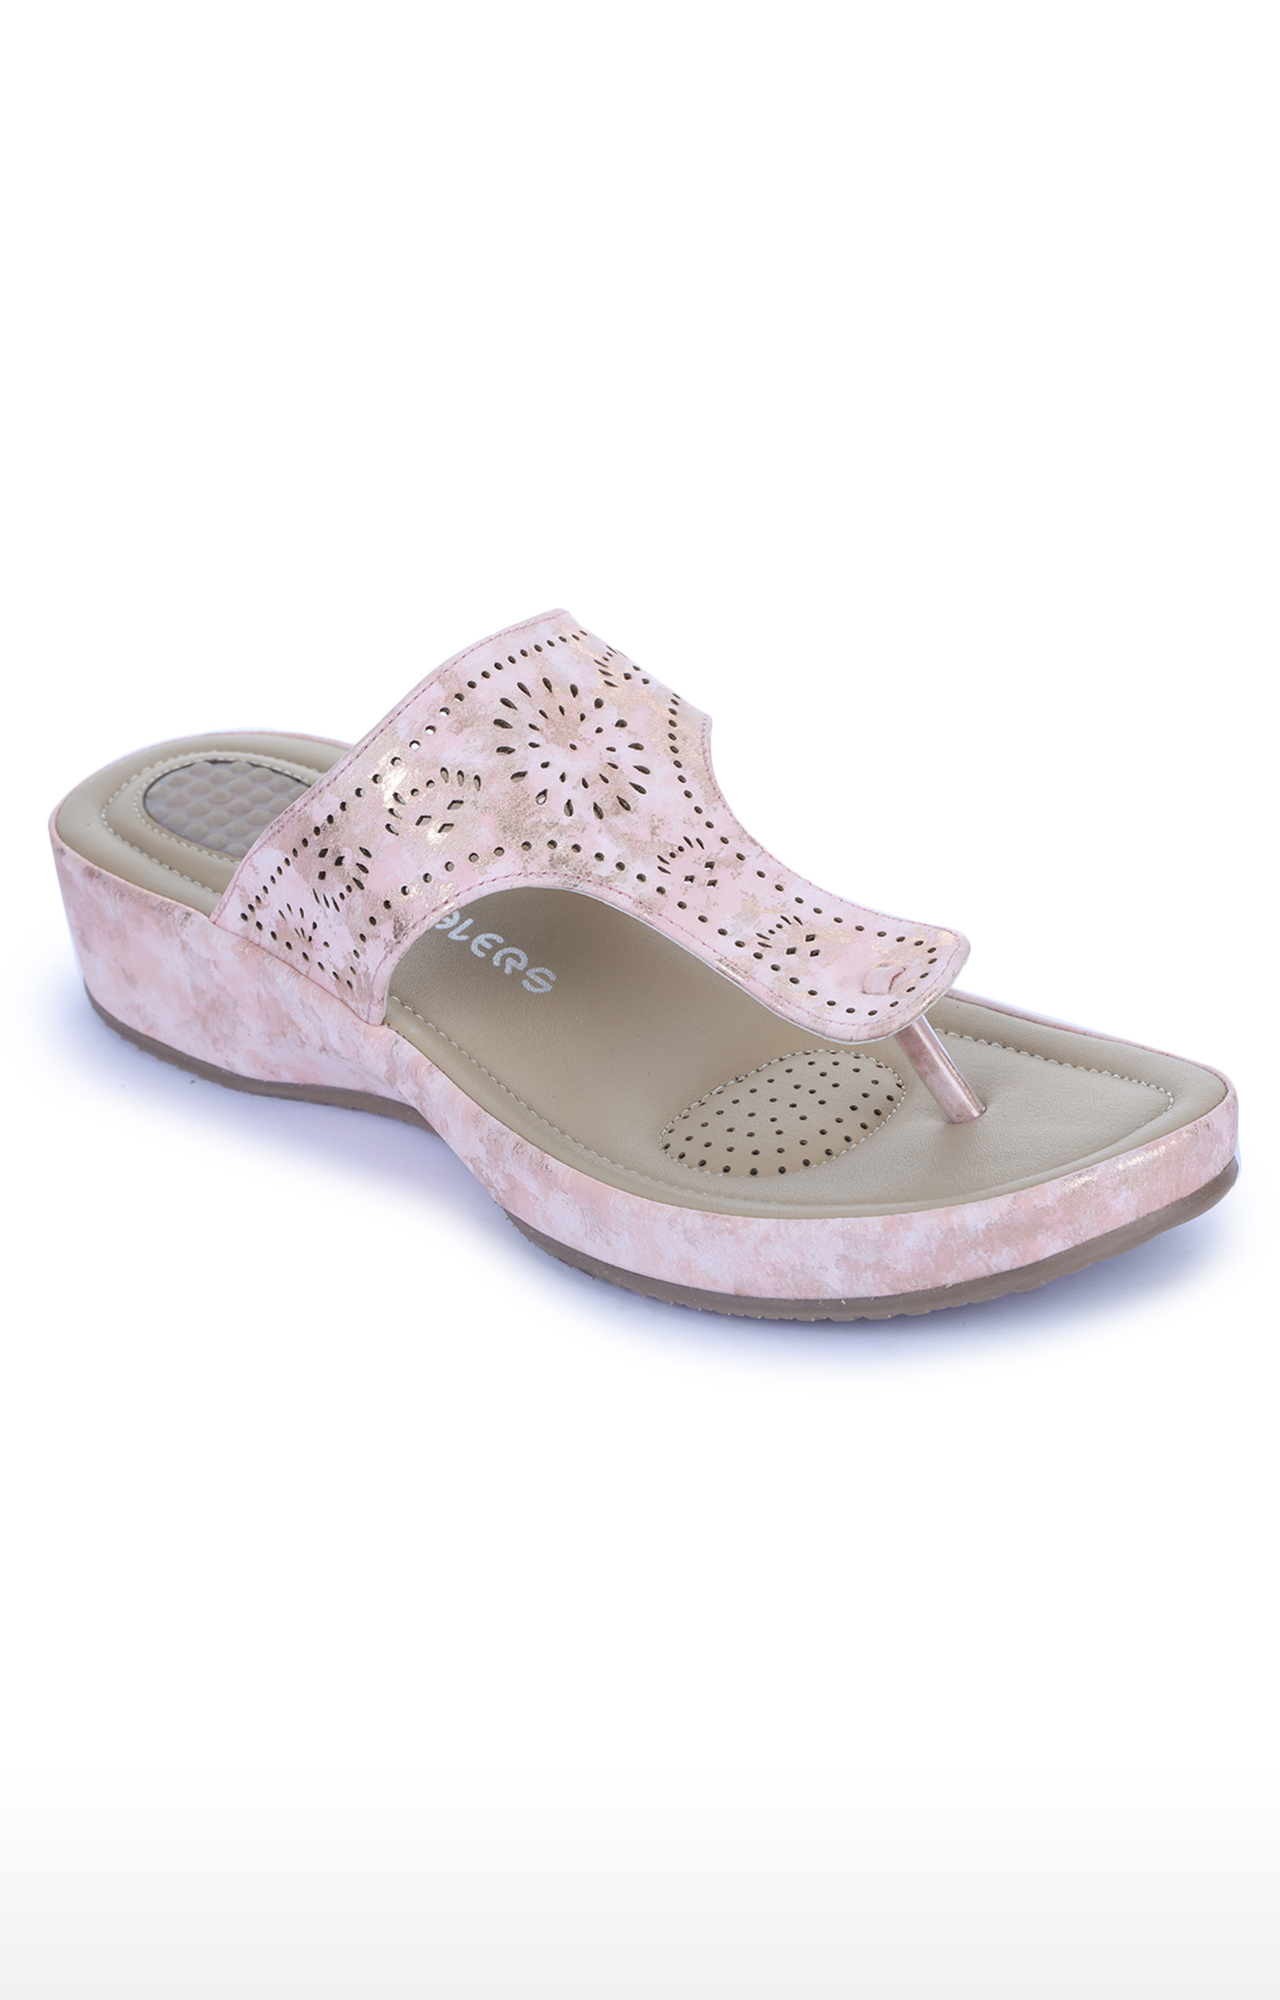 Liberty | Healers by Liberty Pink Wedges